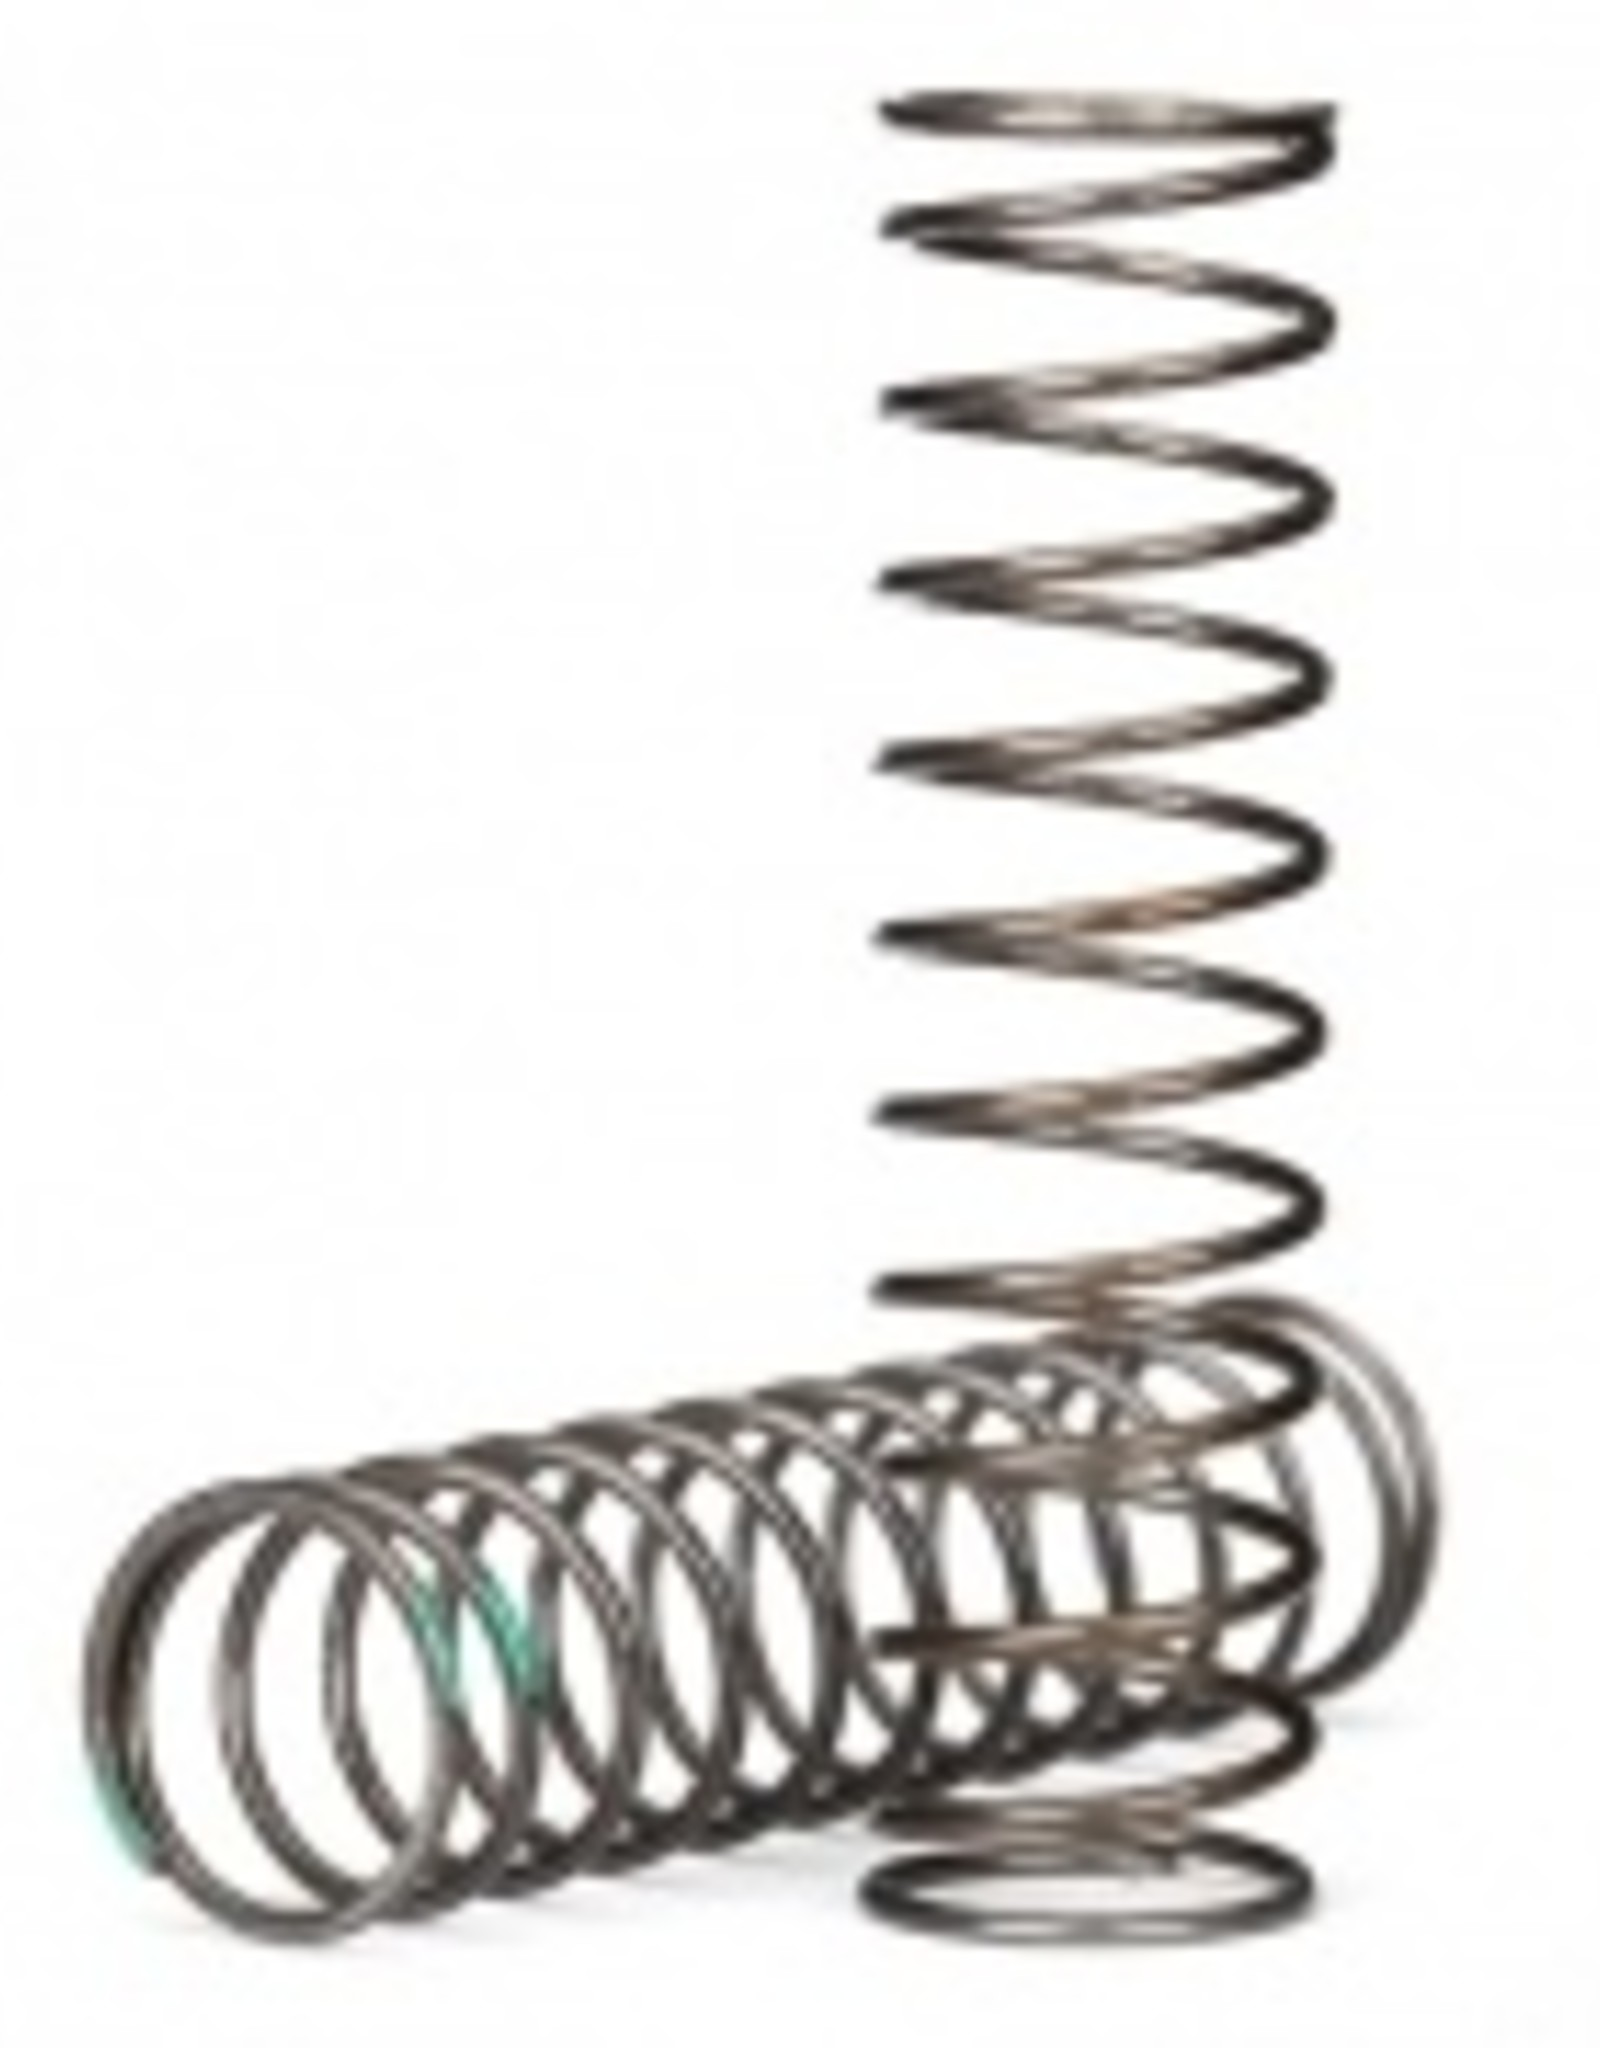 Traxxas Traxxas TRX Springs, shock (natural finish) (GTS) (0.54 rate, green stripe) (2)